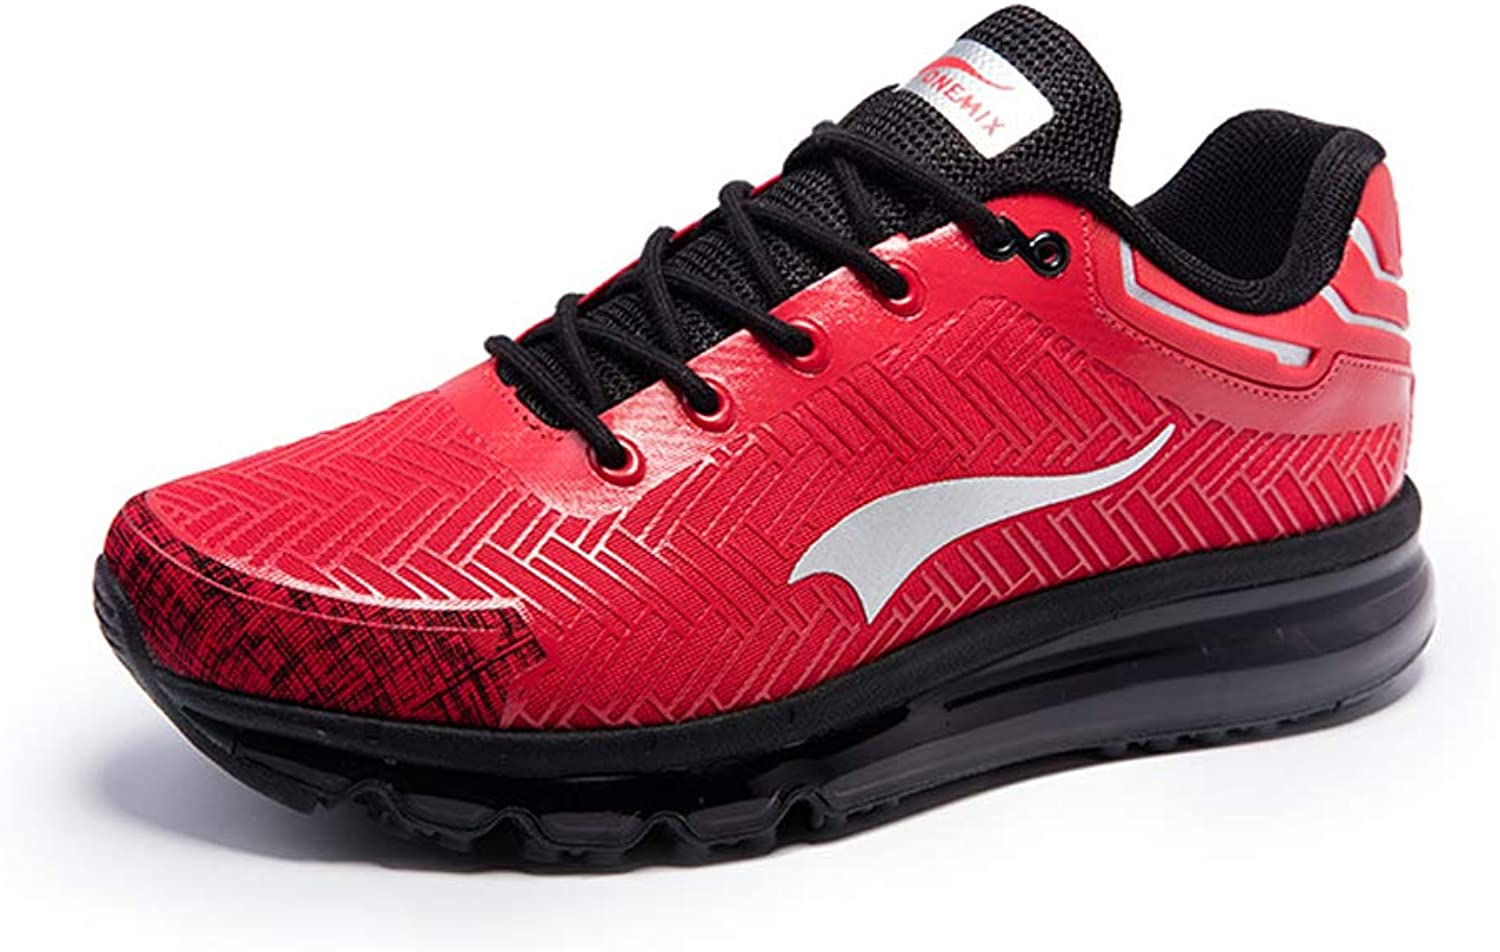 UBCA-ONEMIX Unisex Cushion Running 360 Athletic shoes Outdoor Sport Sneakers